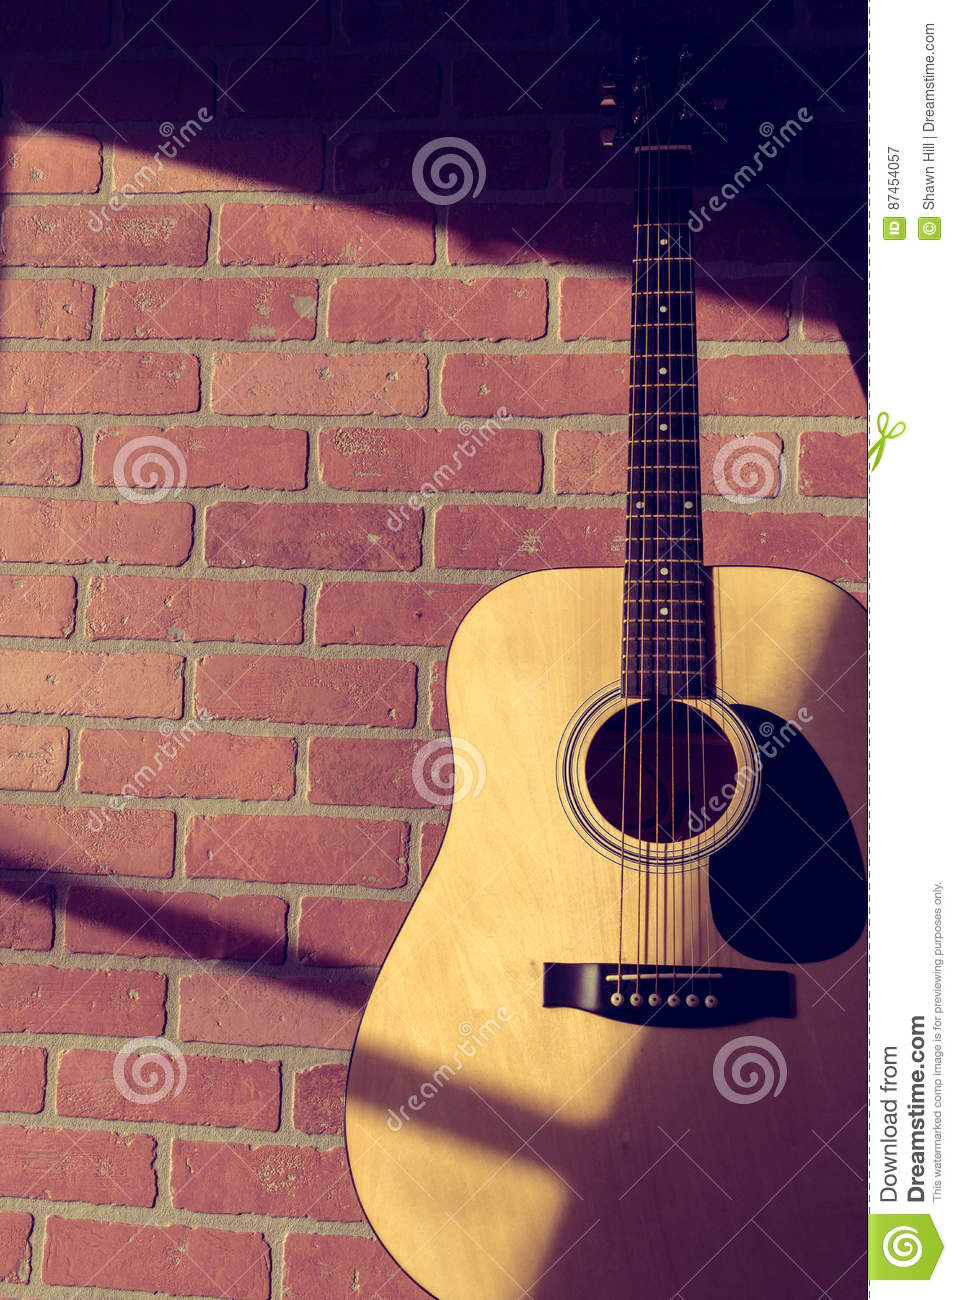 Guitar and wall royalty free stock image cartoondealer for 67 st pauls terrace spring hill